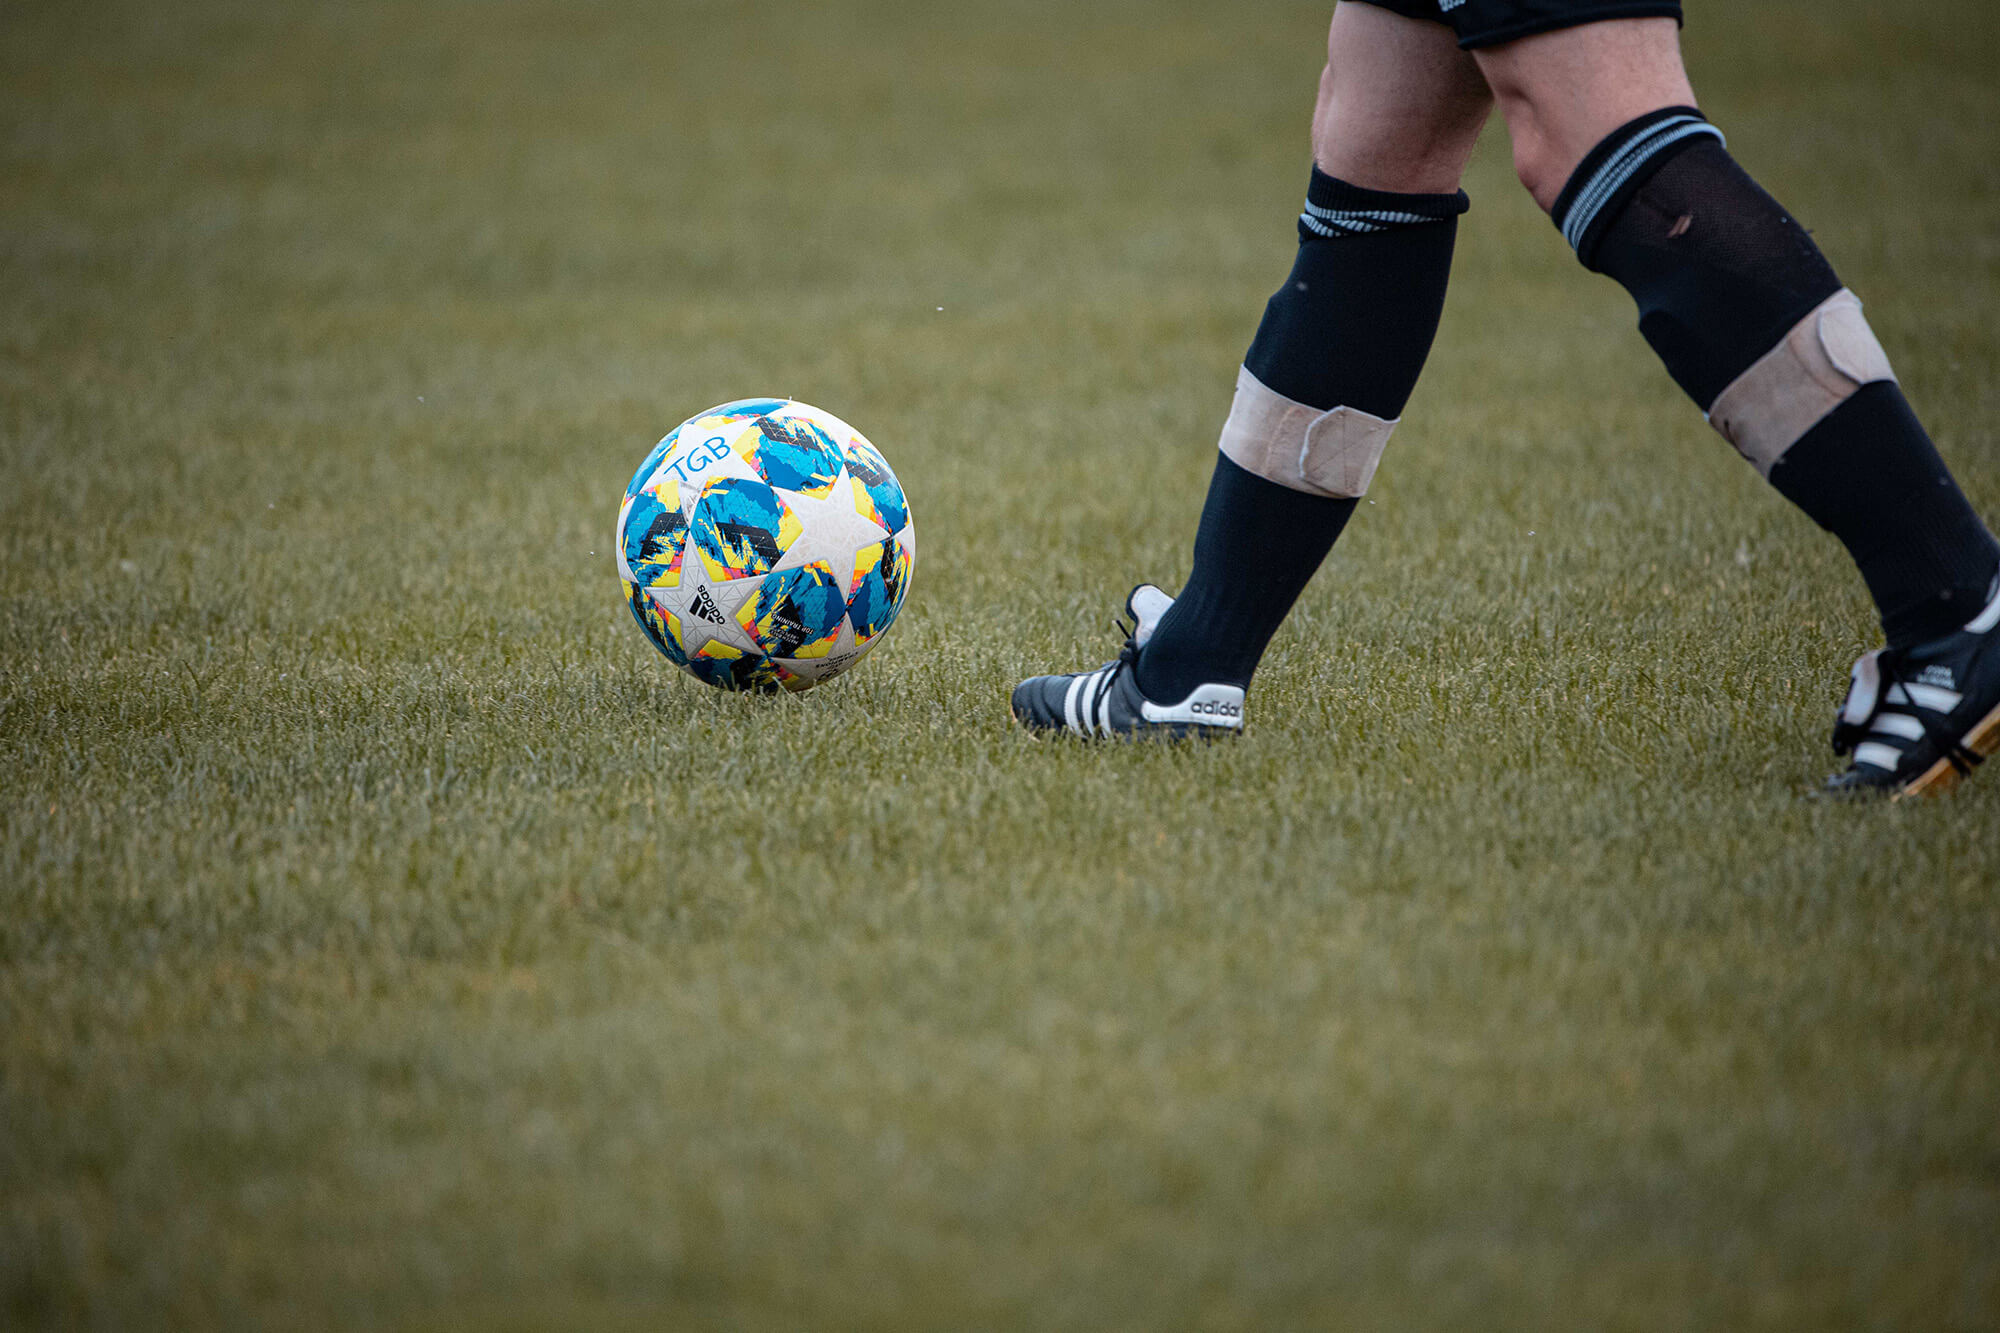 Image of a football being kicked - legs are shwon from the knee down with black football socks and football boots